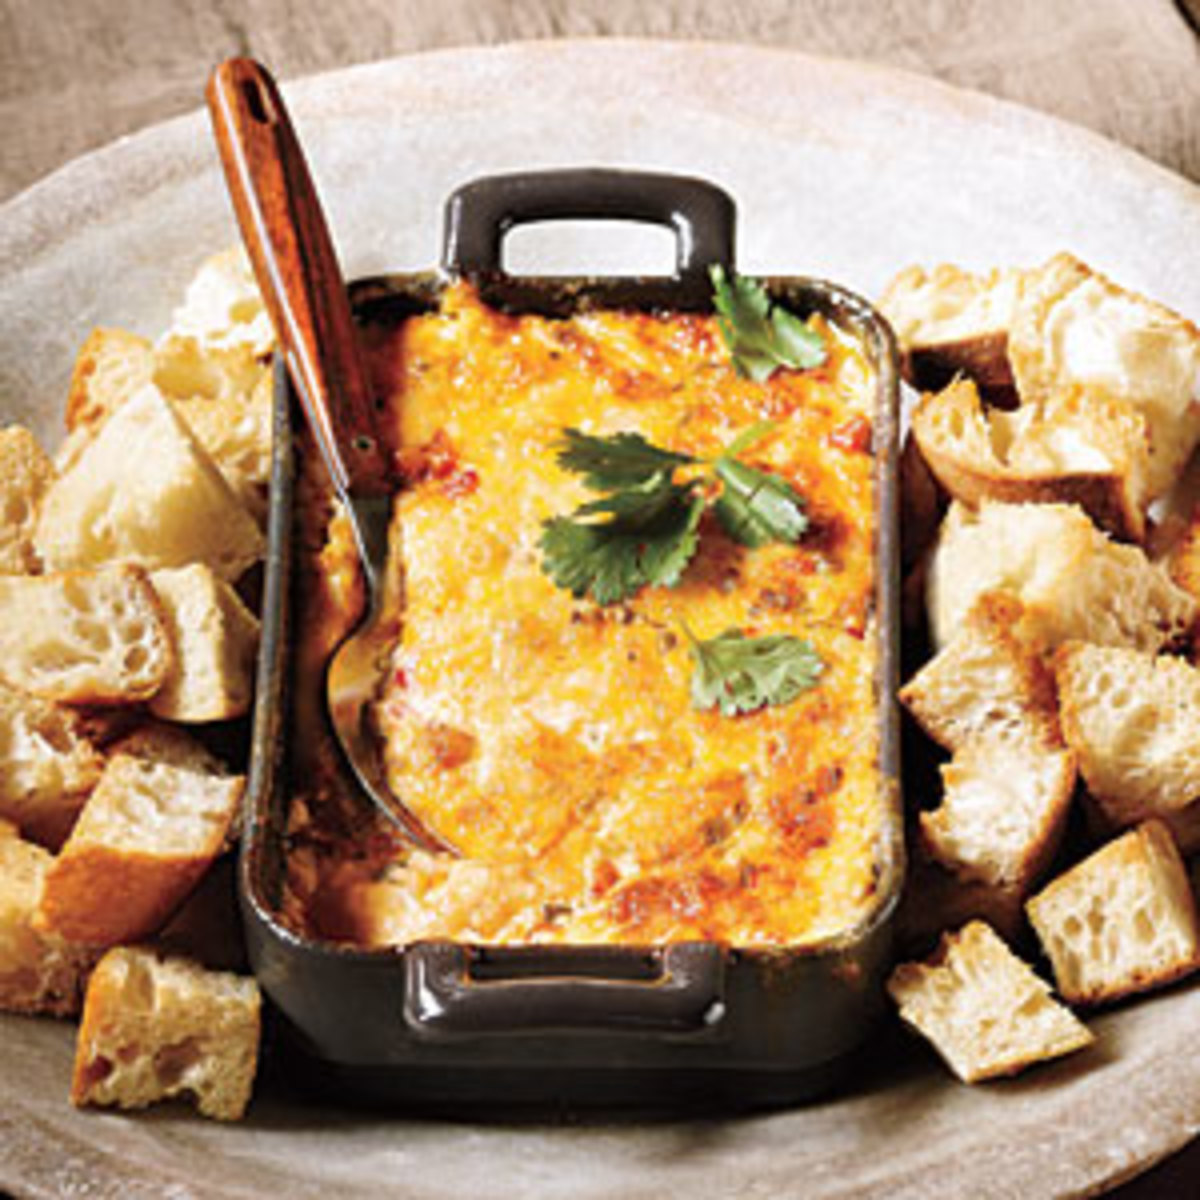 Baked Tex-Mex Pimiento Cheese Dip. Oh man this is so very delicious.